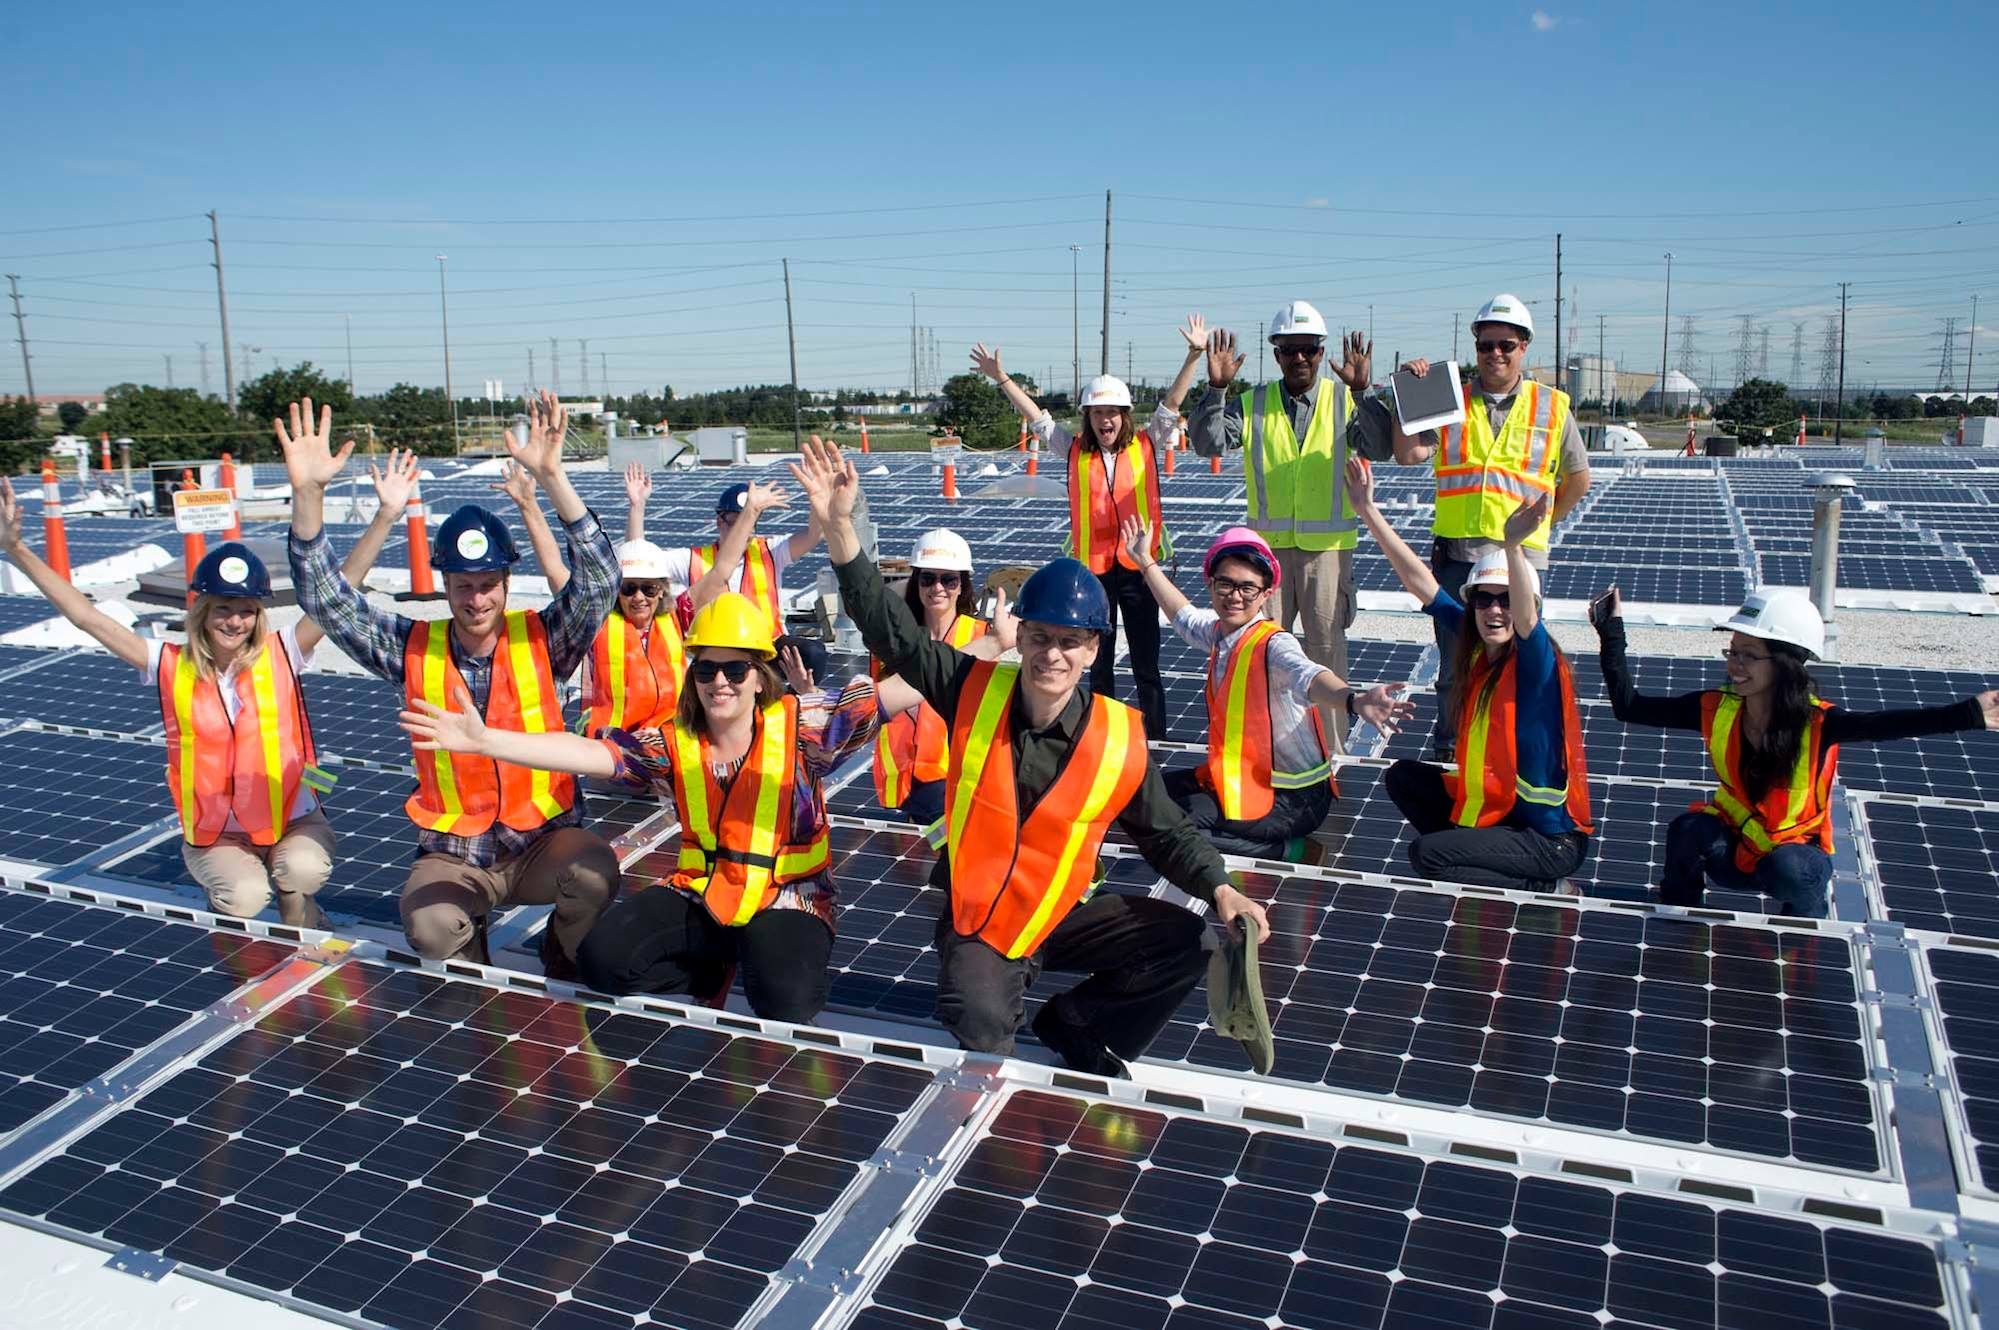 SolarShare members on rooftop